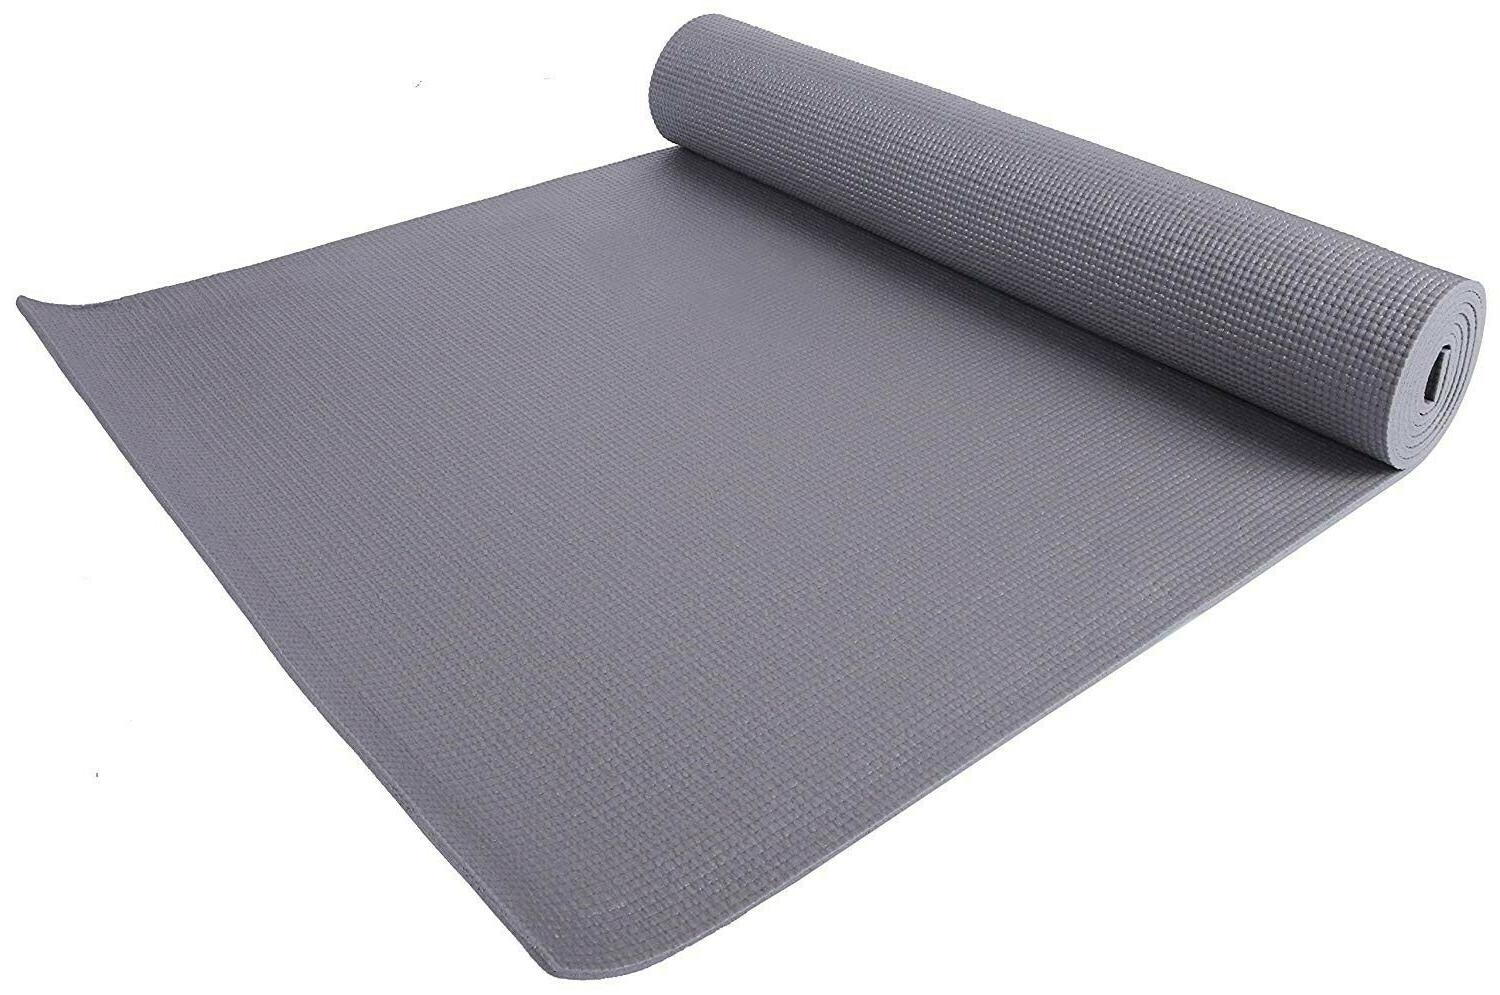 BalanceFrom Thick High Density Anti-Tear Exercise Yoga Mat with Carrying